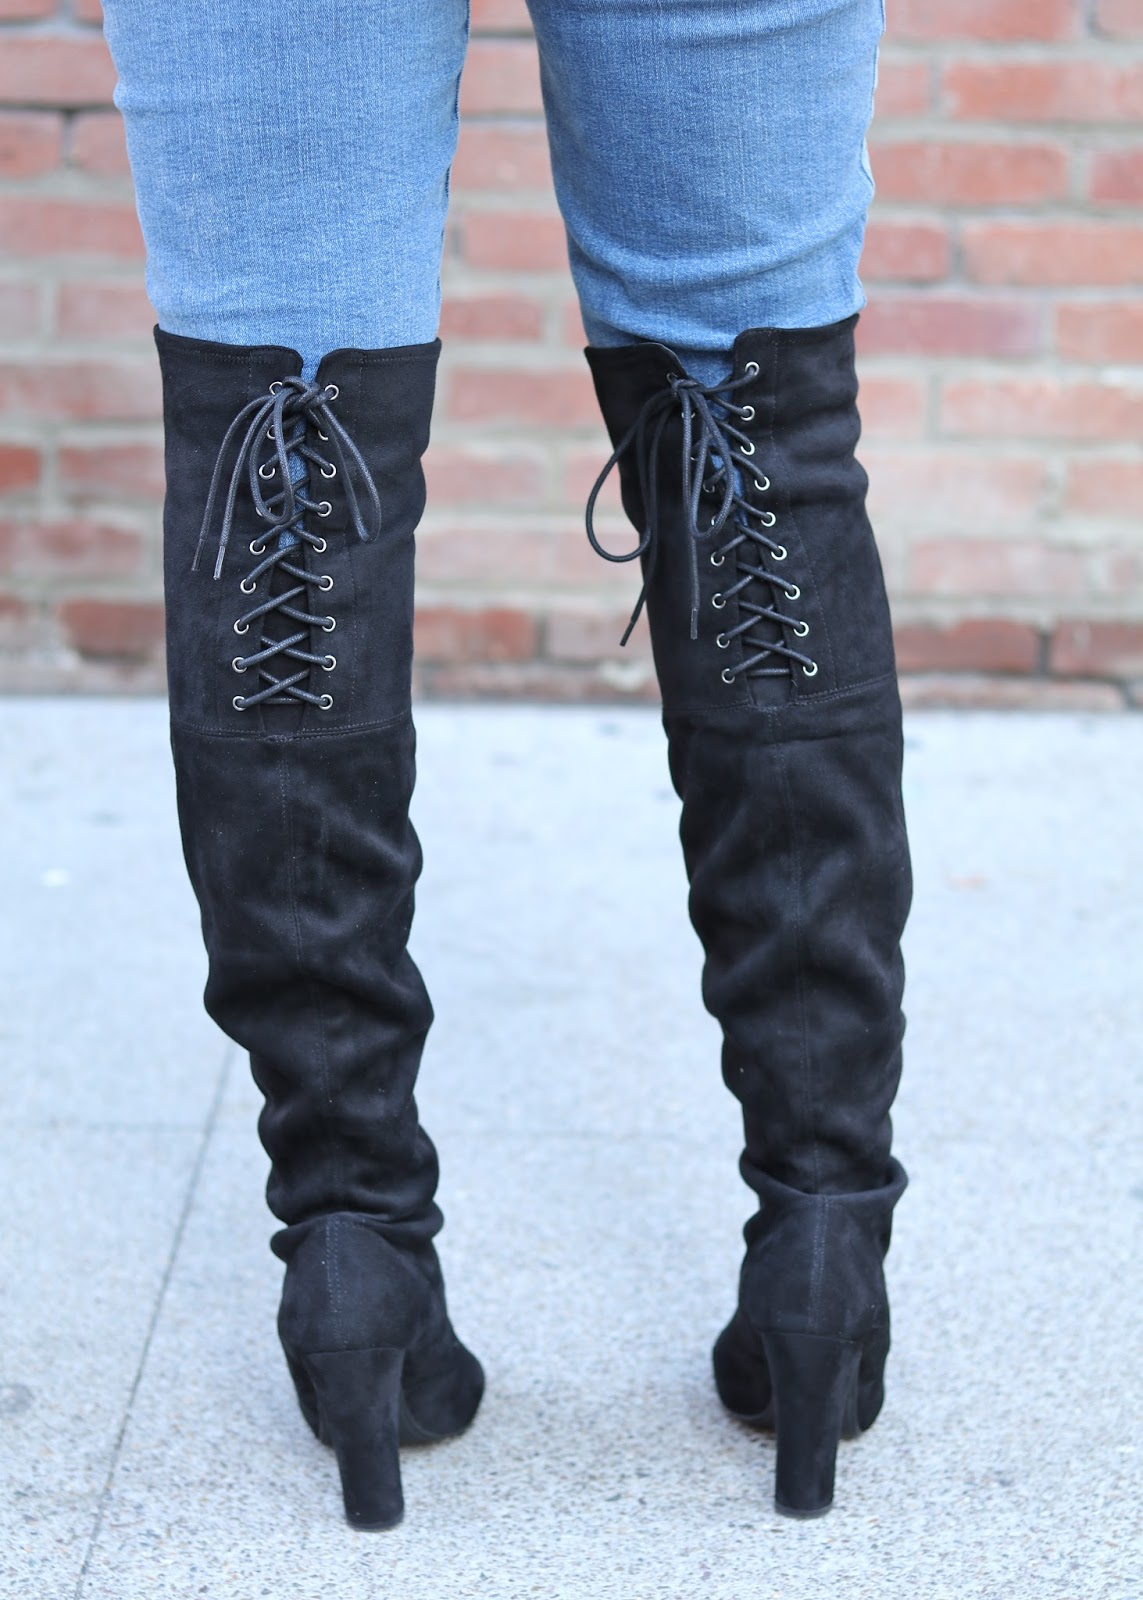 gray sweater outfit, black over the knee boots, stuart weitzman highland boots, steve madden over the knee boots